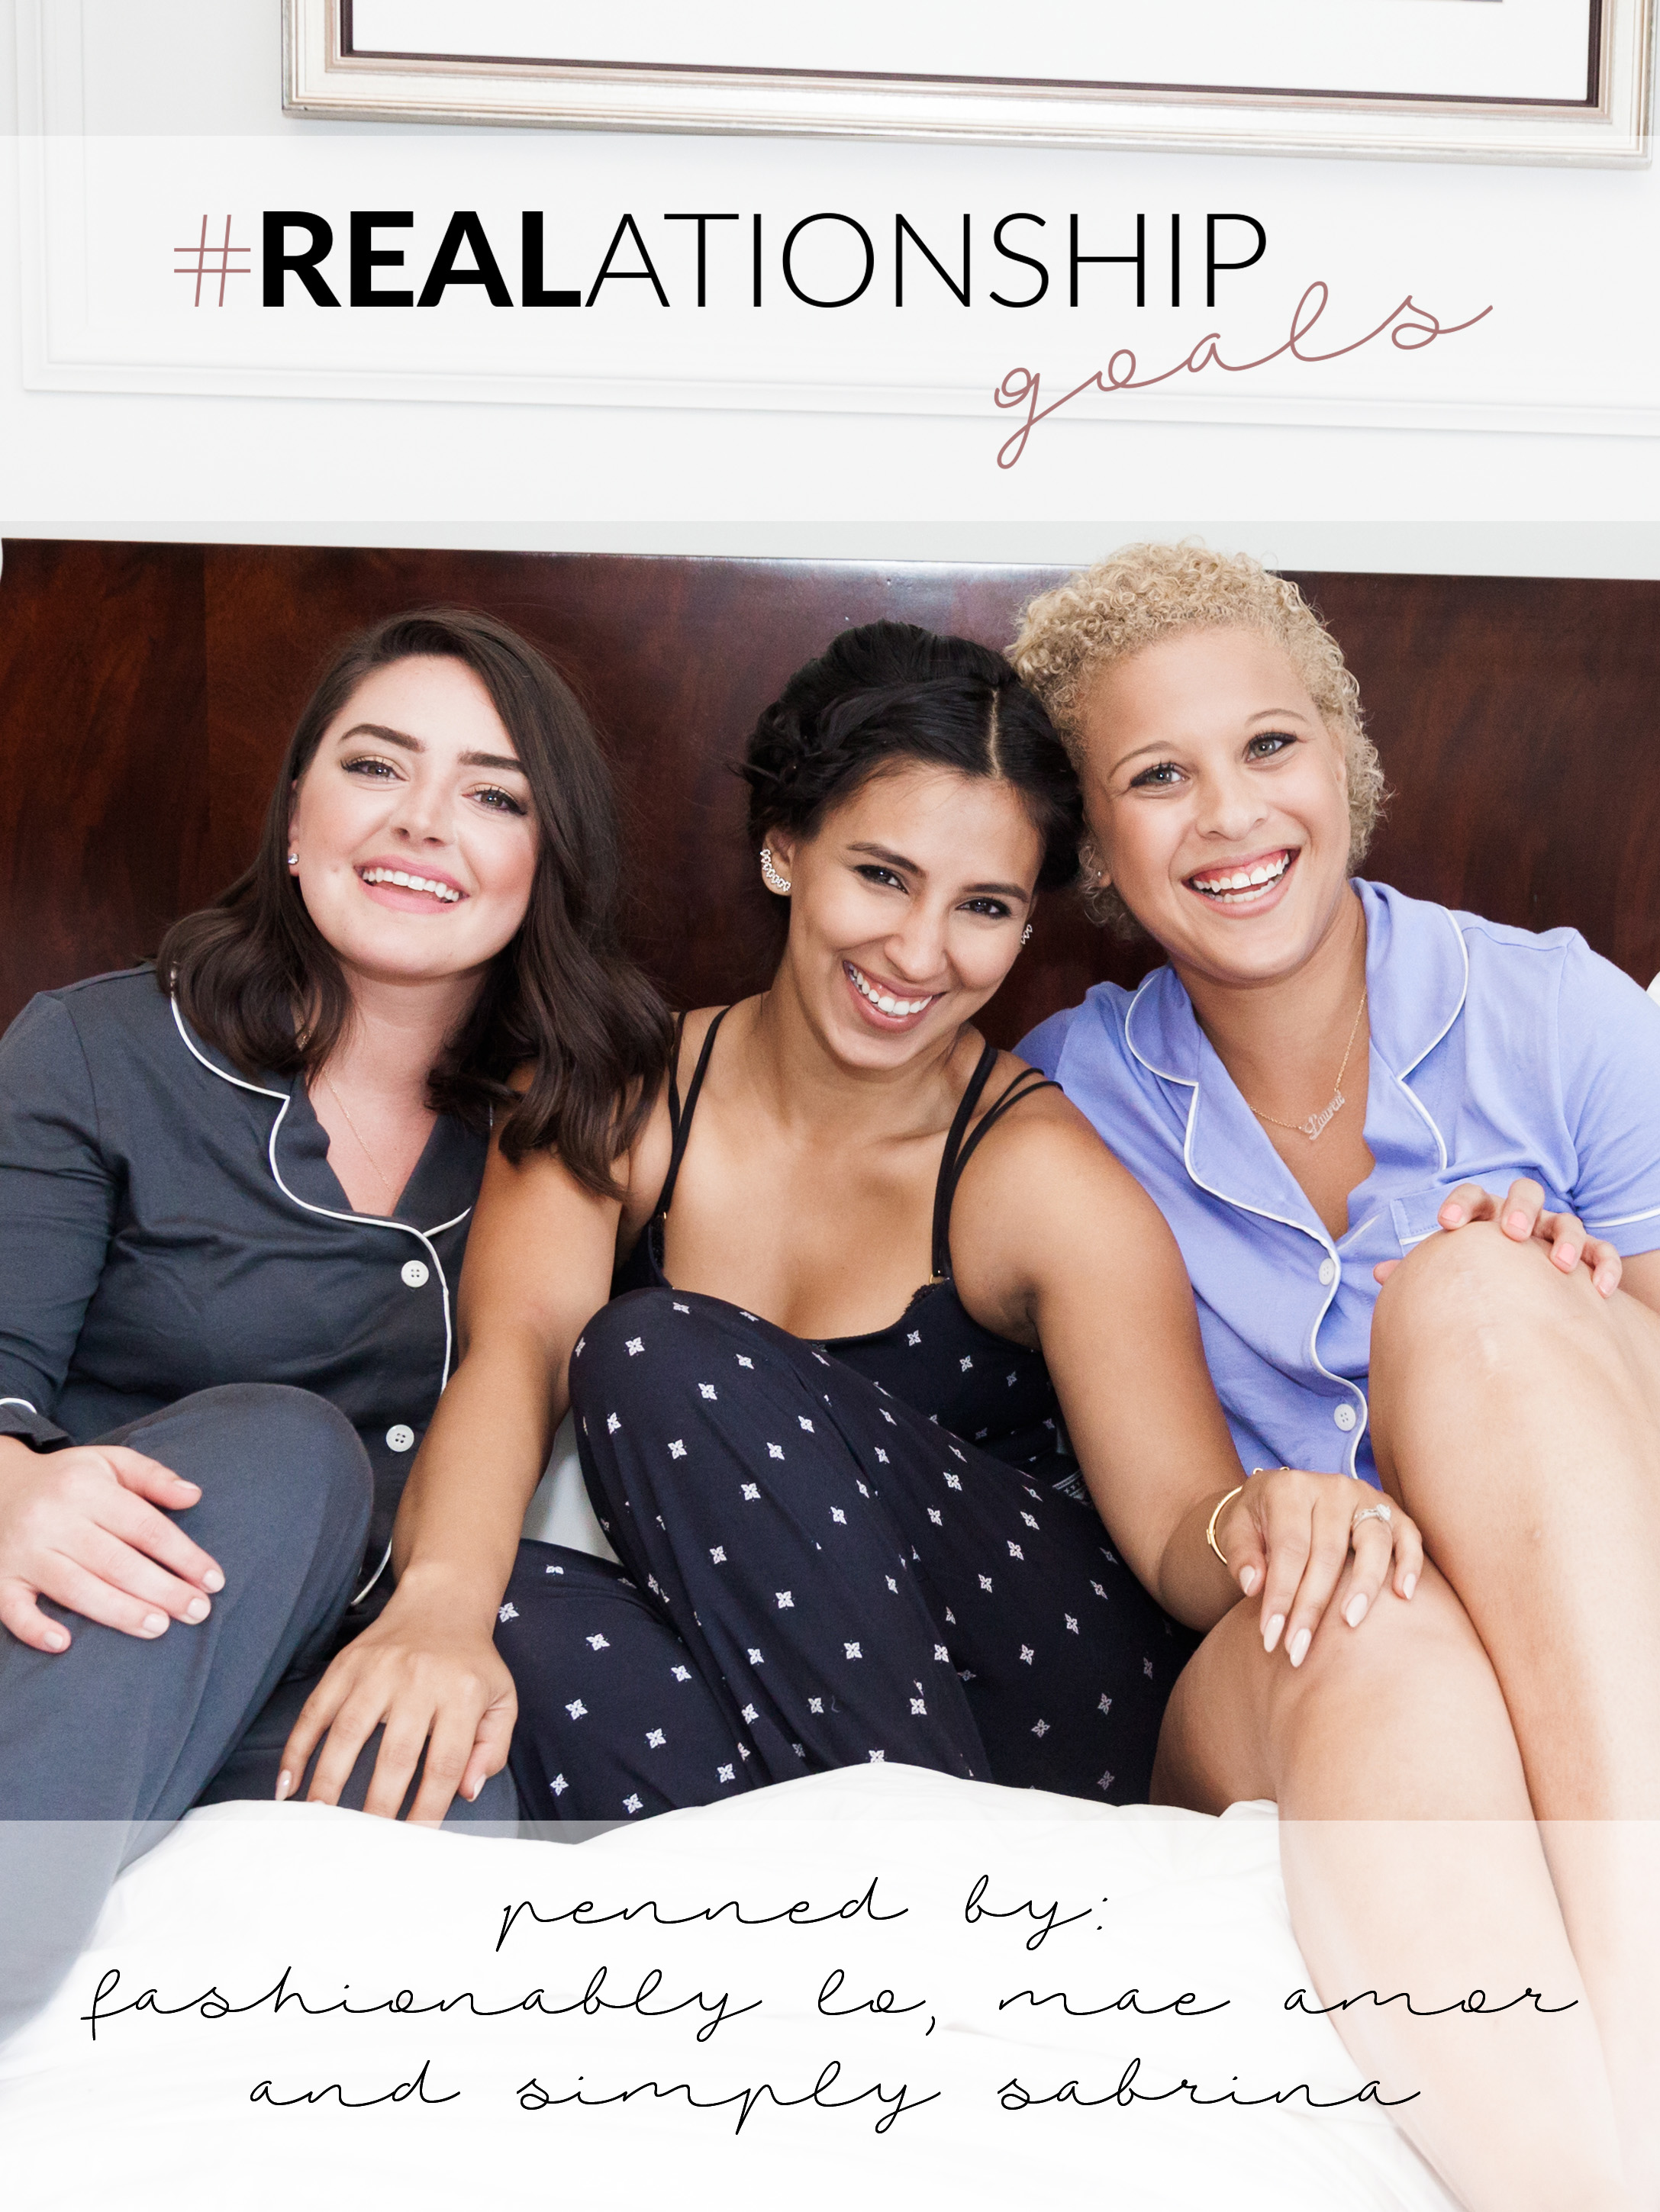 #REALationshipGoals with Mae Amor, Fashionably Lo, and Simply Sabrina - via @maeamor